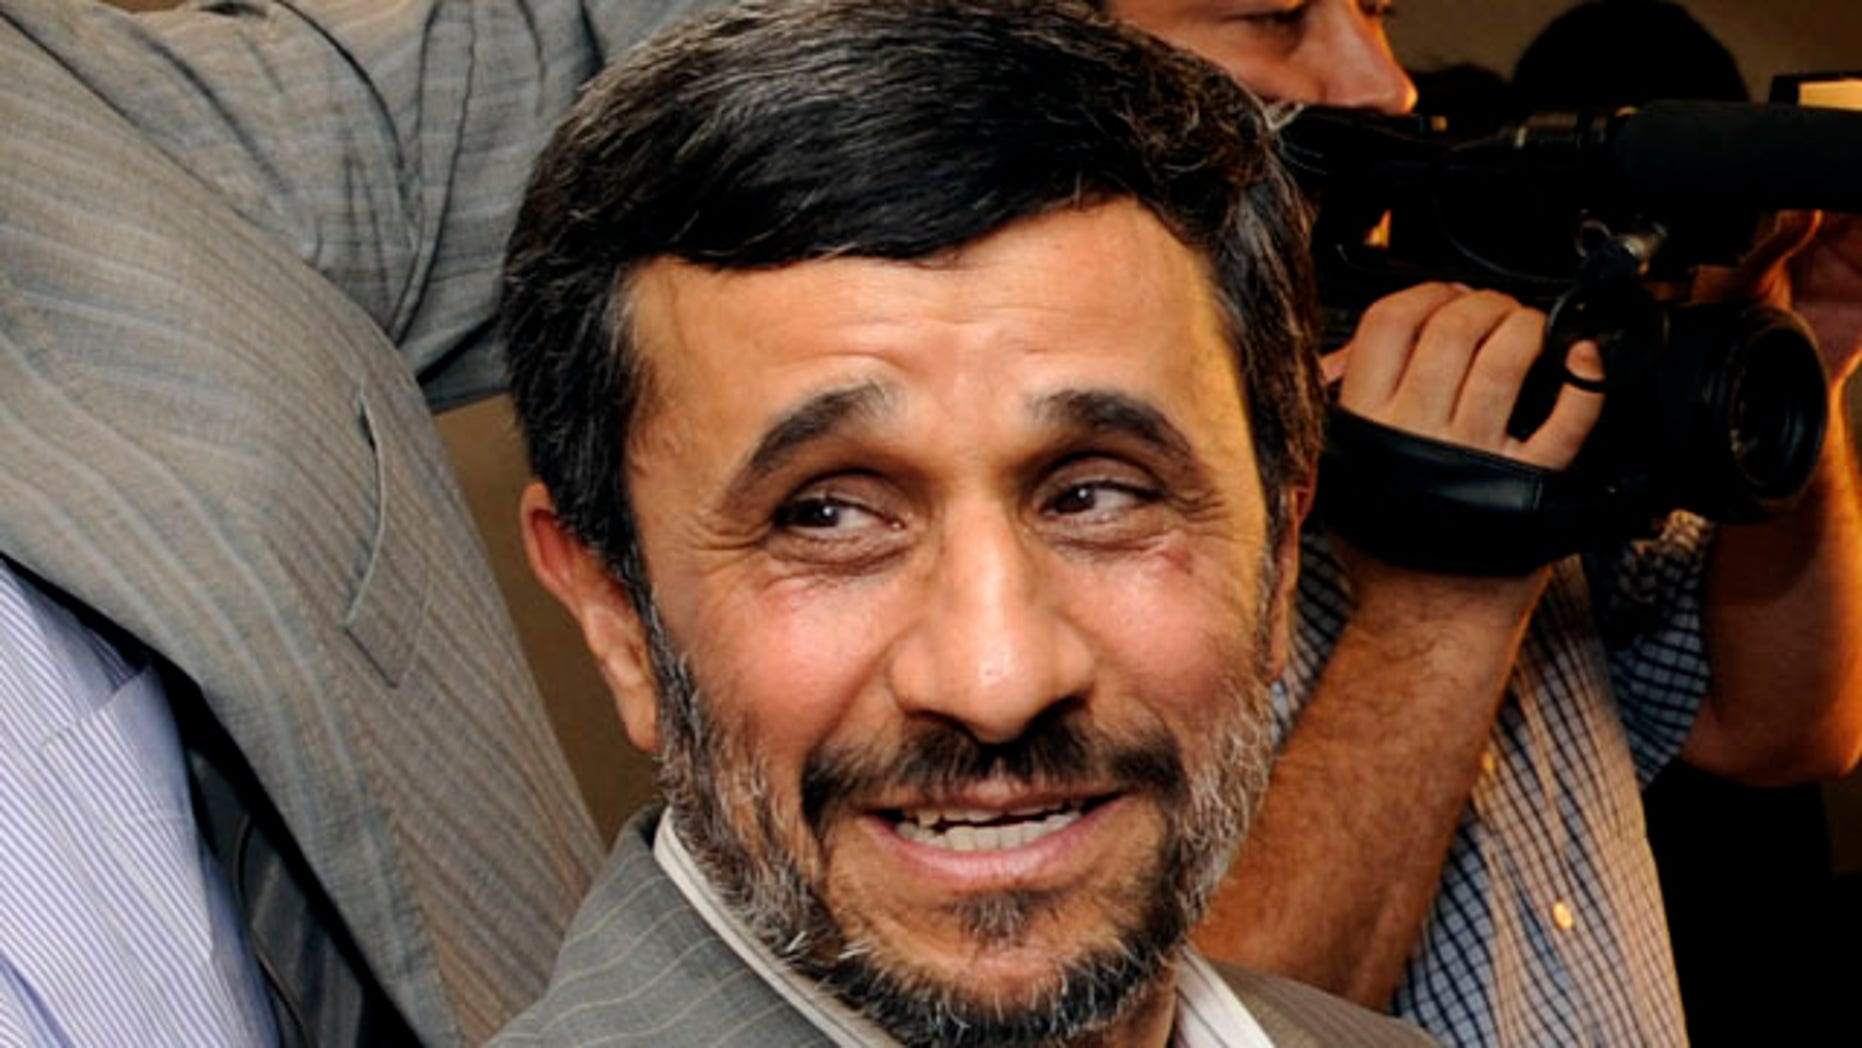 The report specifically names Iranian President Mahmoud Ahmadinejad as a violator of religious freedom. (AP)